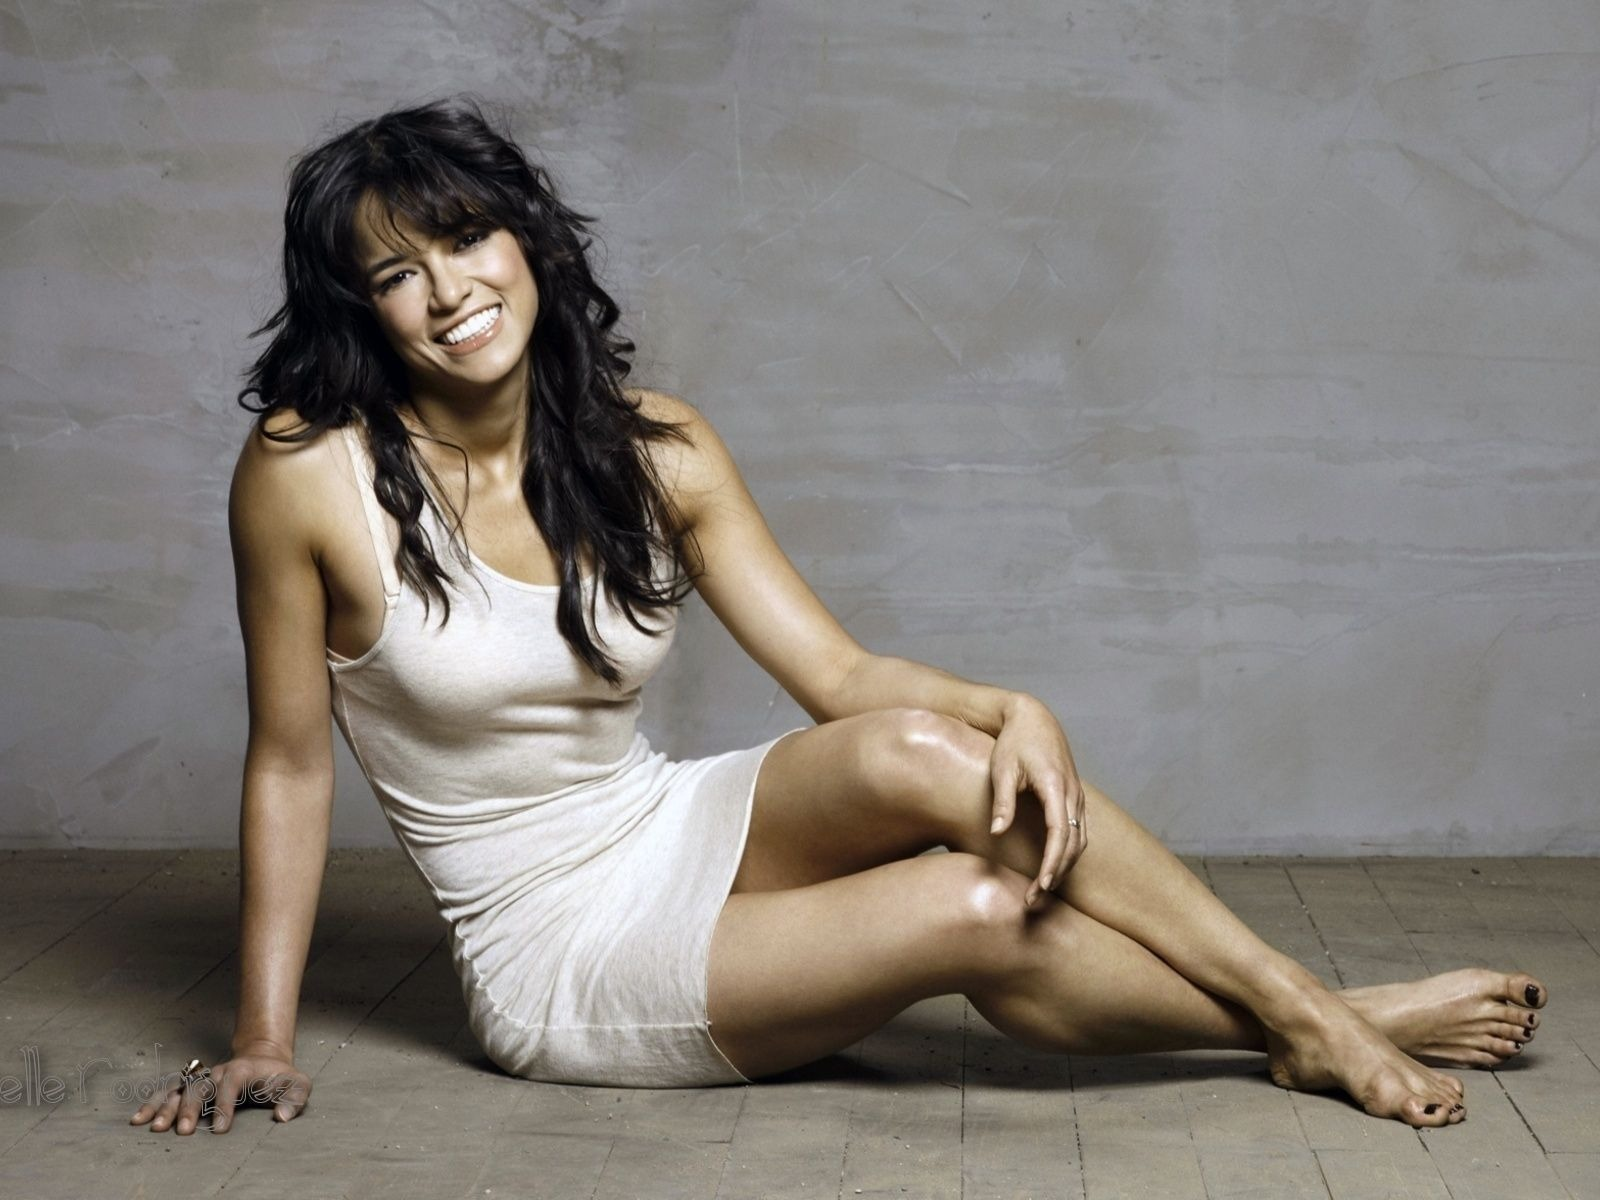 Michelle Rodriguez #002 - 1600x1200 Wallpapers Pictures Photos Images